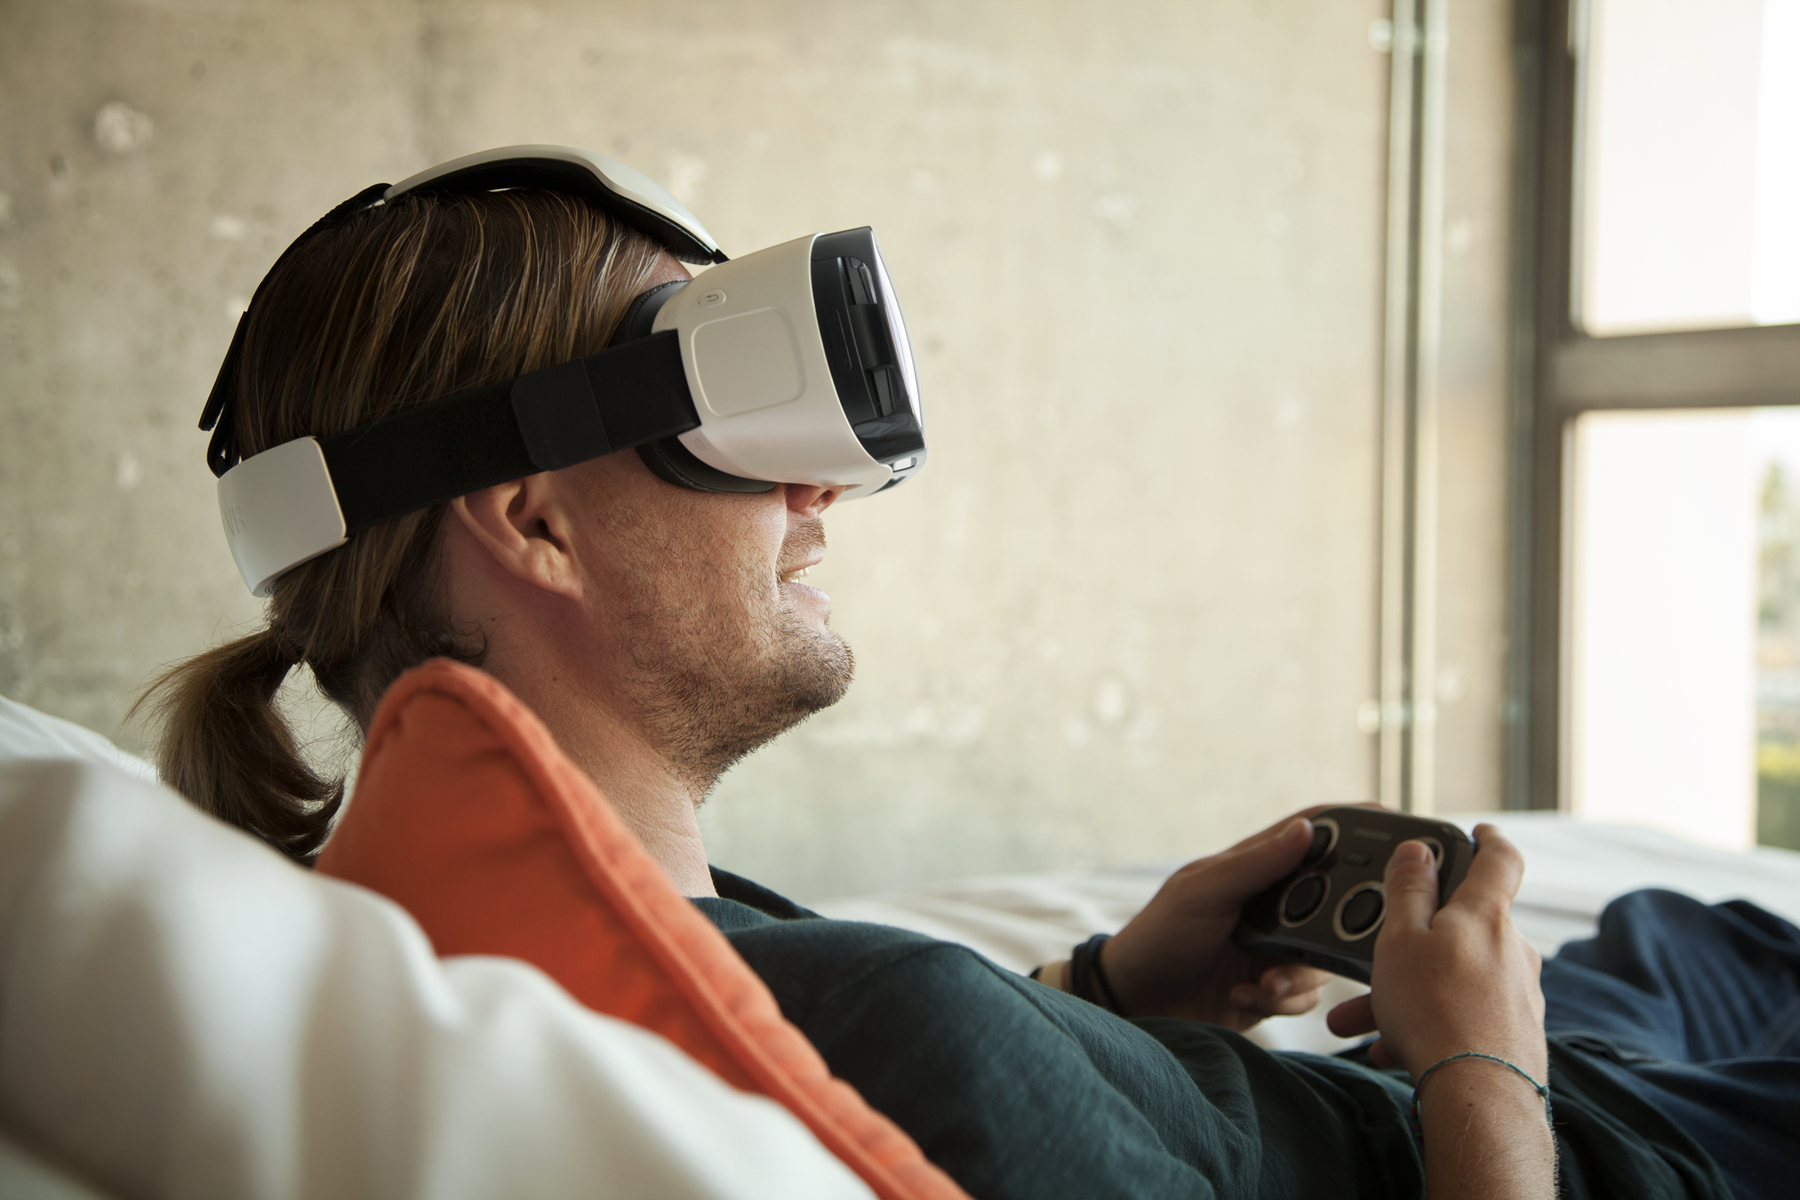 GearVR AndroDollar 3 - Samsung Unveils the Gear VR Headset; A Virtual Reality Accessory For The Galaxy Note 4